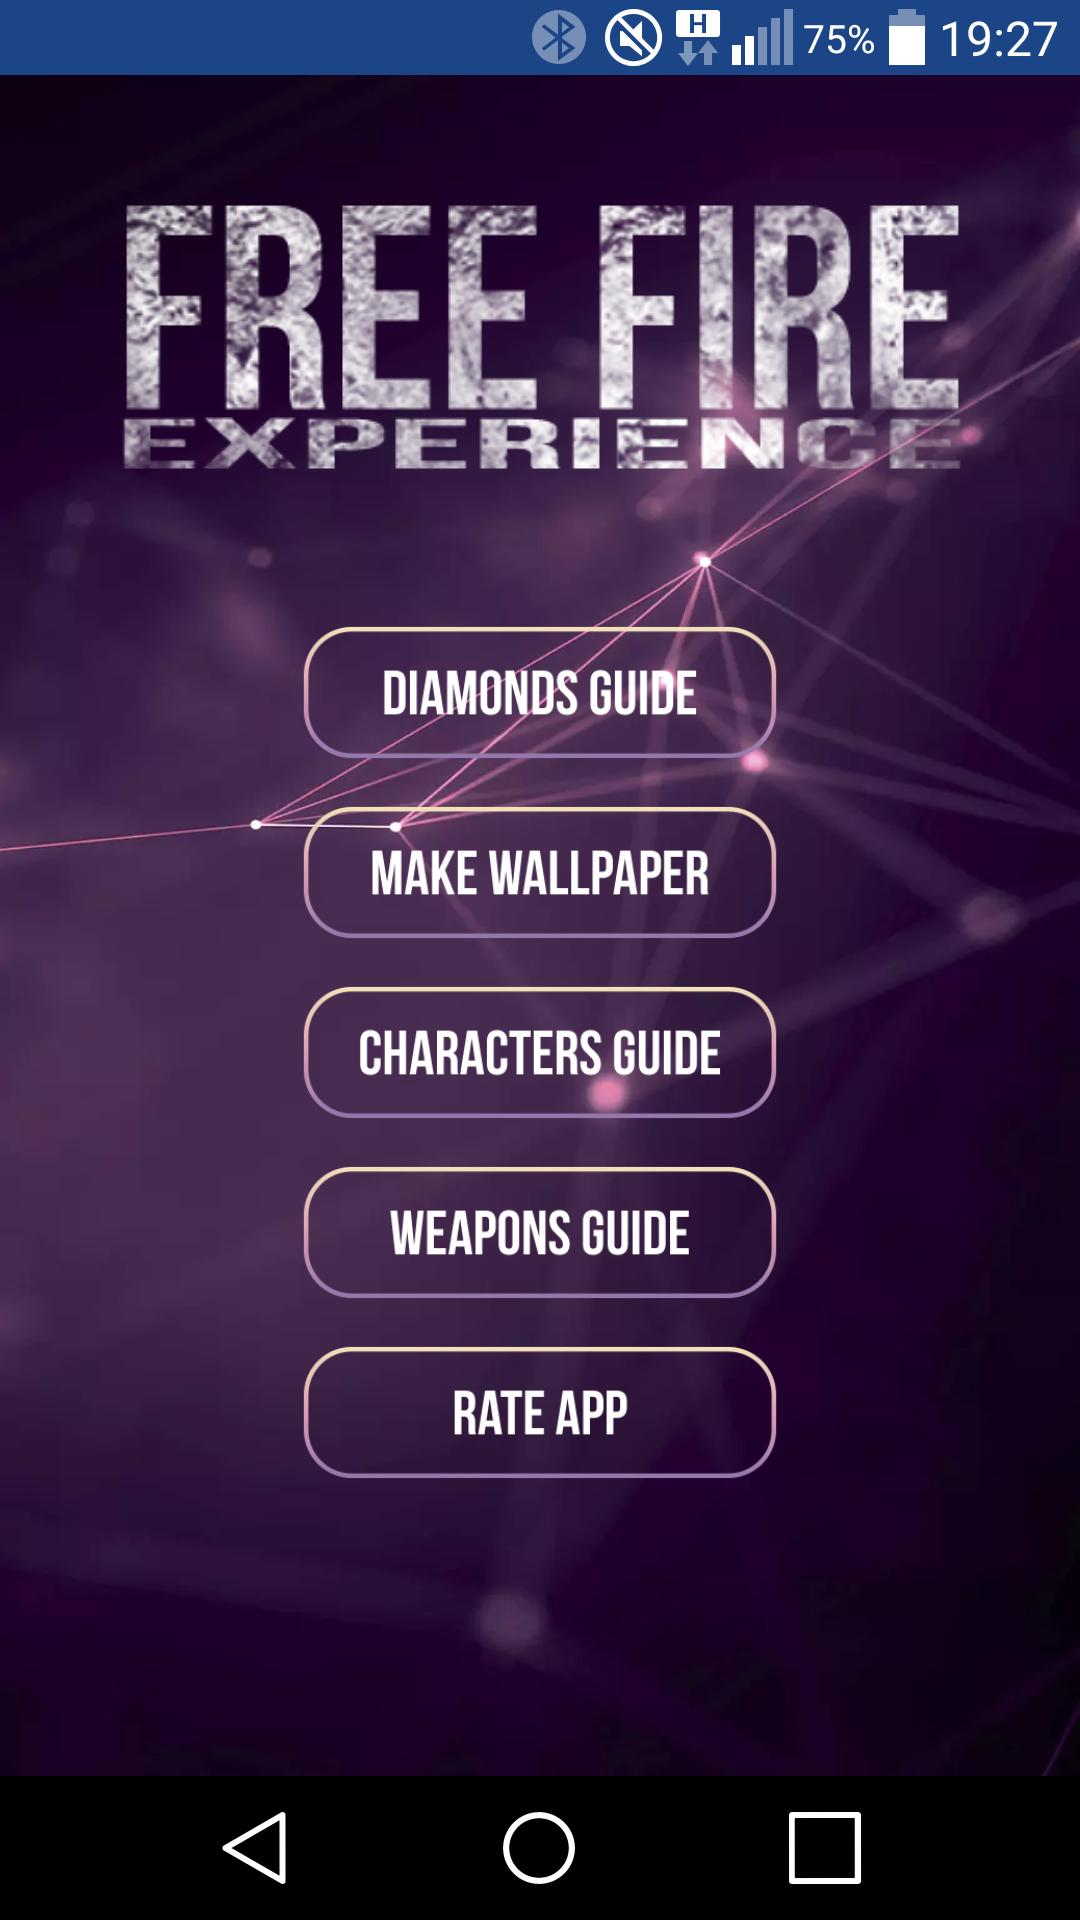 Crear Wallpaper Guía Para Free Fire For Android Apk Download